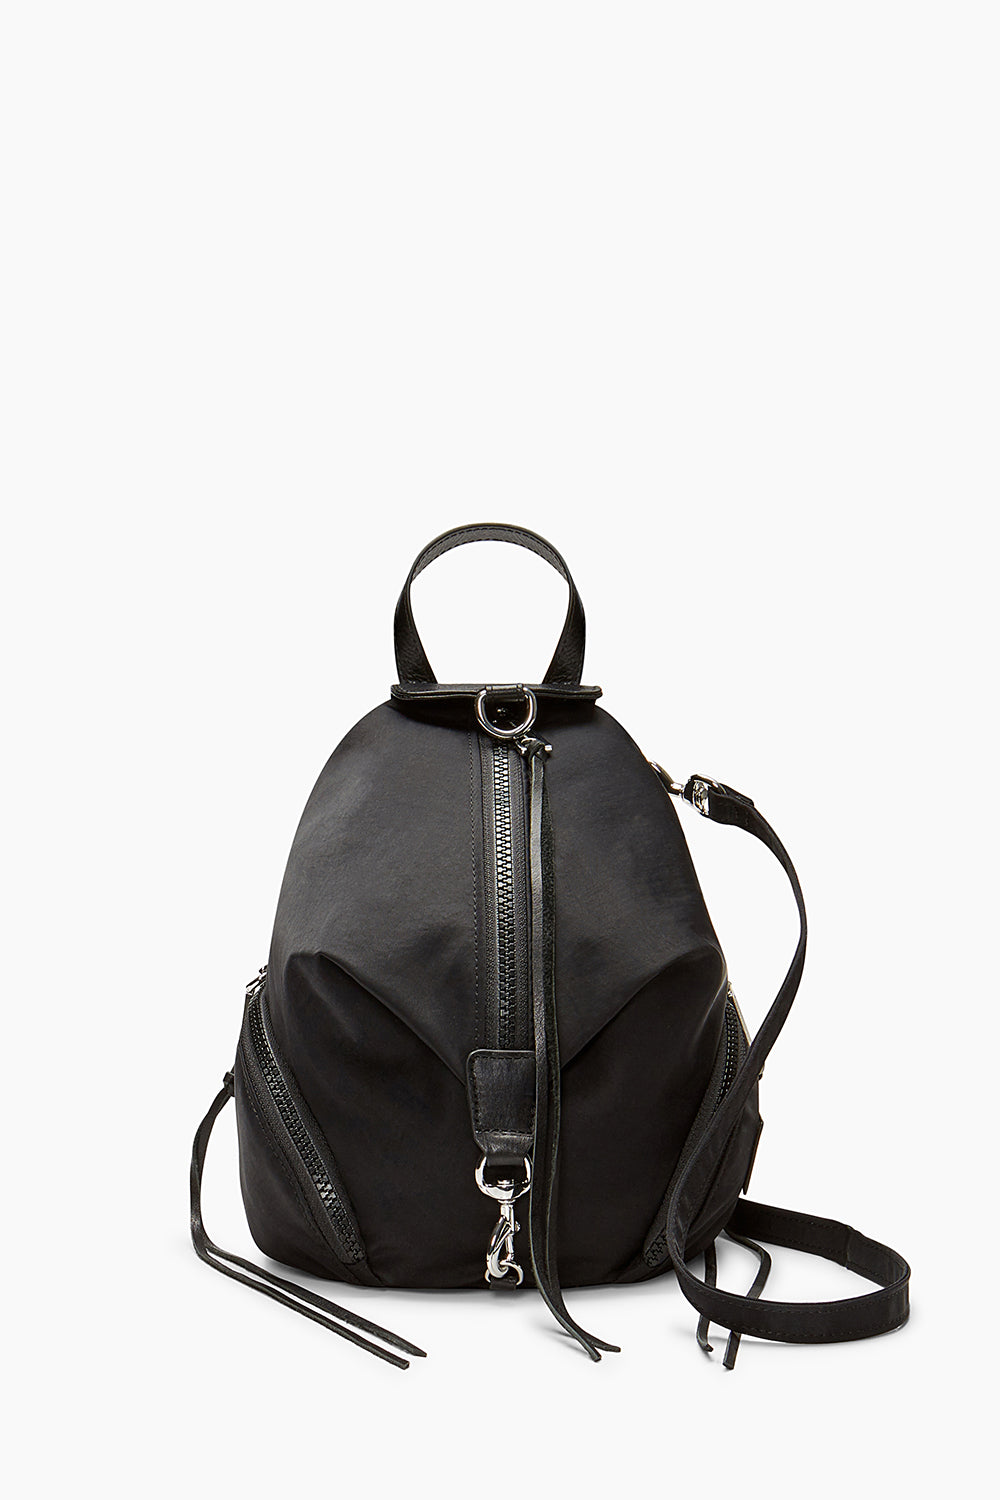 Rebecca-Minkoff Convertible Mini Julian Nylon Backpack